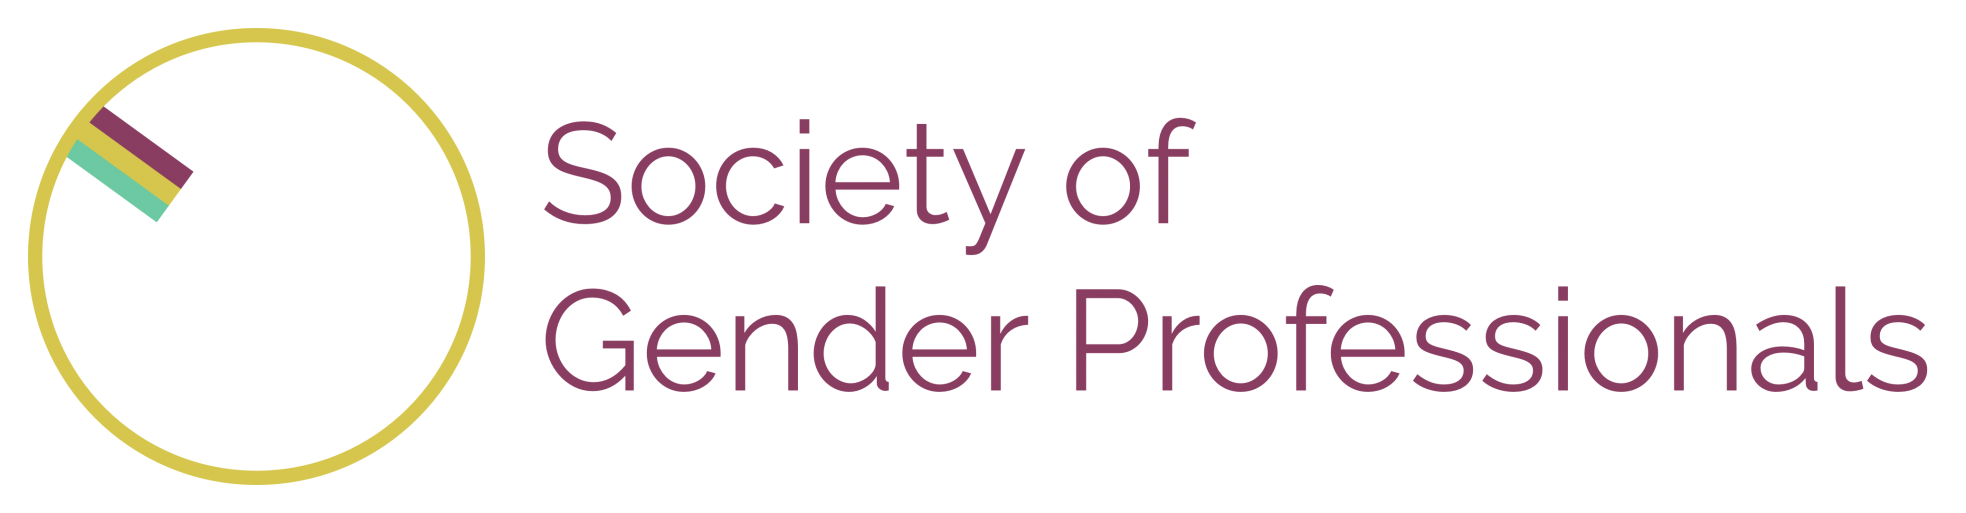 Society of Gender Professionals - logo